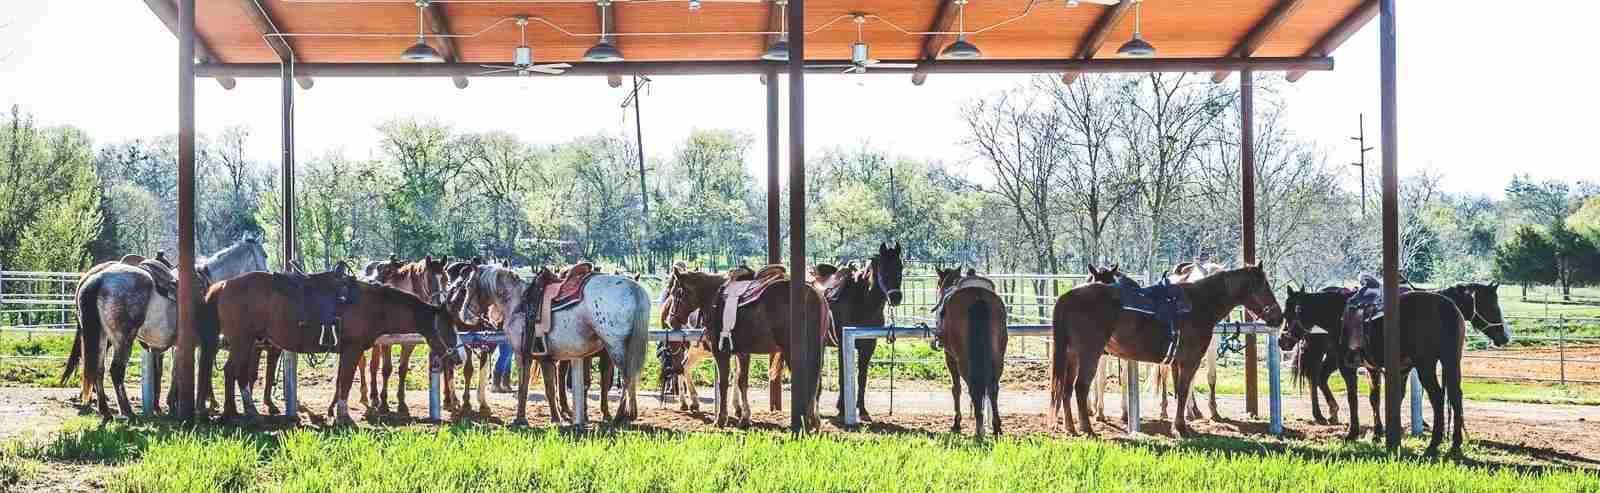 (Photo via River Ranch Texas Horse Park on Facebook)